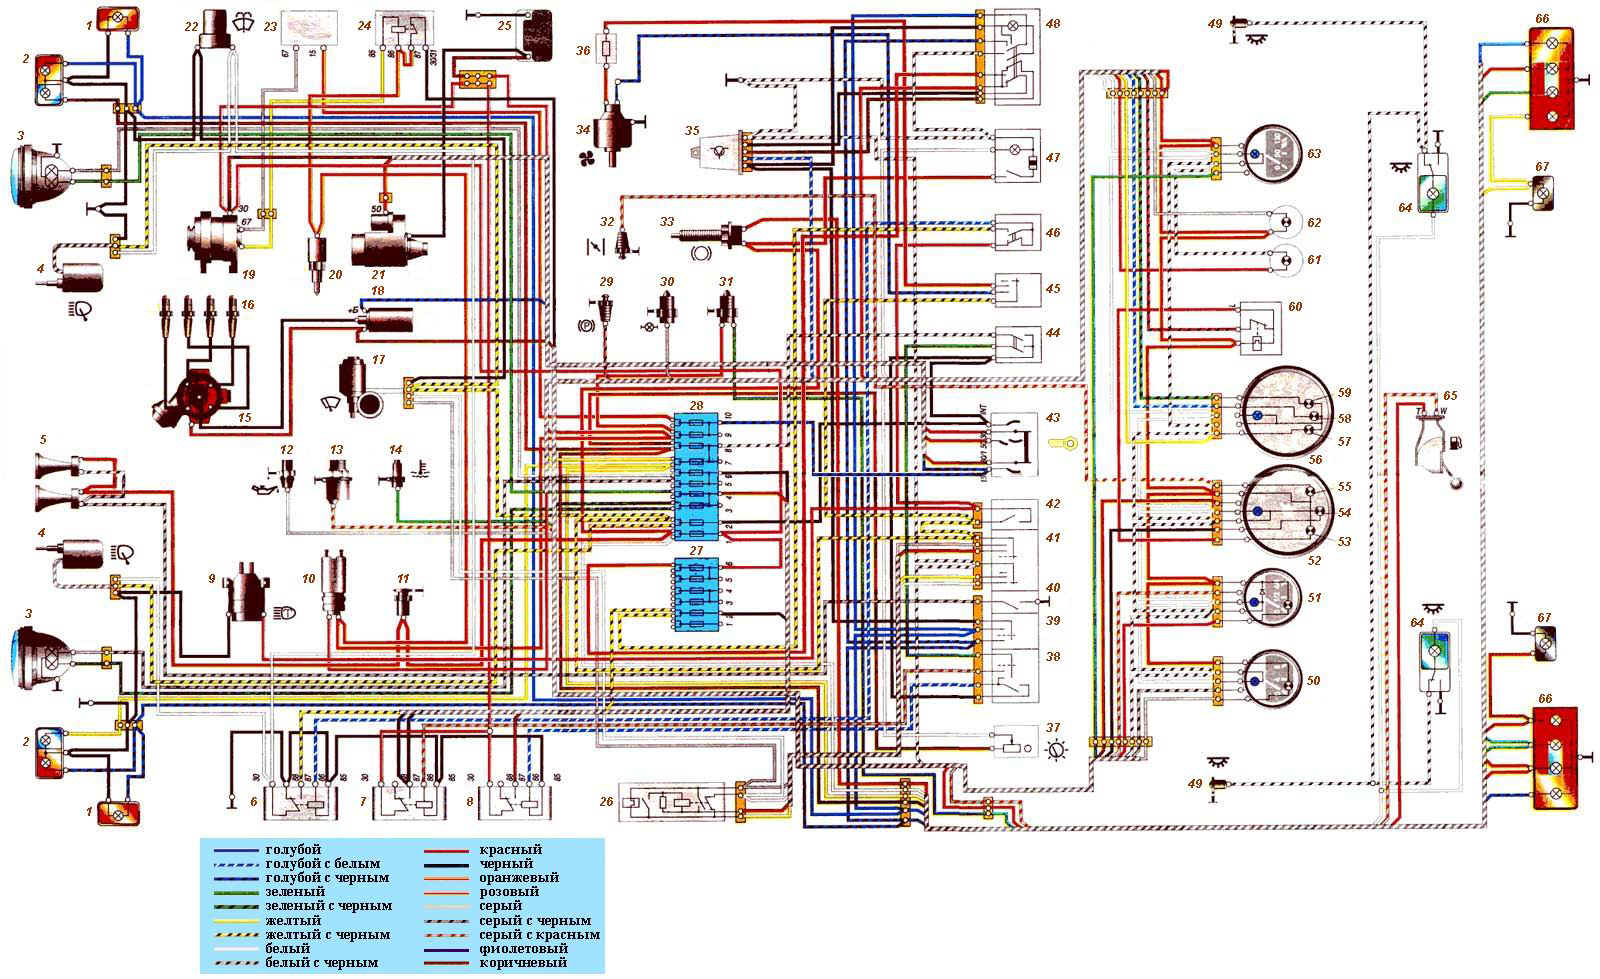 2121_wiring  Wire Oil Pressure Switch Wiring Diagram on oil pressure sensor diagram, oil relay switch, oil sending unit location isuzu trooper, oil heater wiring diagram, oil temperature sensor 2007 dodge charger, oil pressure shut off switch, oil burner wiring diagram, oil pumps for thermoregulators, oil light wiring diagram, oil pump pressure gauge, oil pressure troubleshooting, 2 prong pressure switch diagram, water pump pressure switch diagram, oil pressure sender switch schematic, oil pressure switch sensor, oil pressure switch connector, well pressure tank plumbing diagram, oil pressure sending unit wiring, well pressure switch diagram, oil pump wiring diagram,